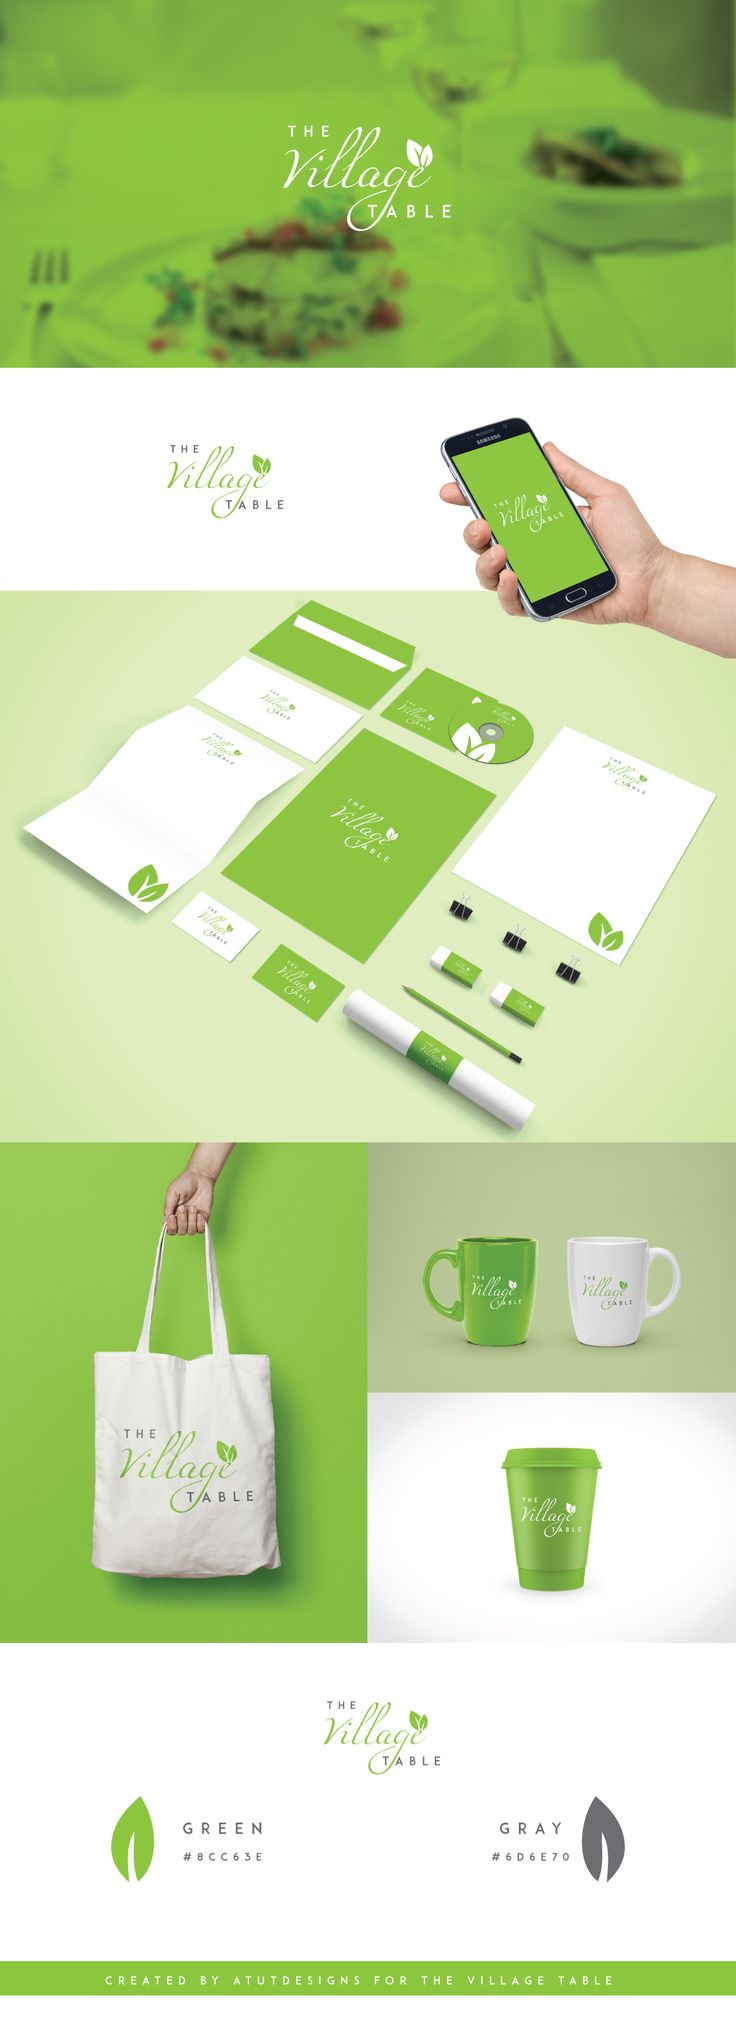 branding design ideas